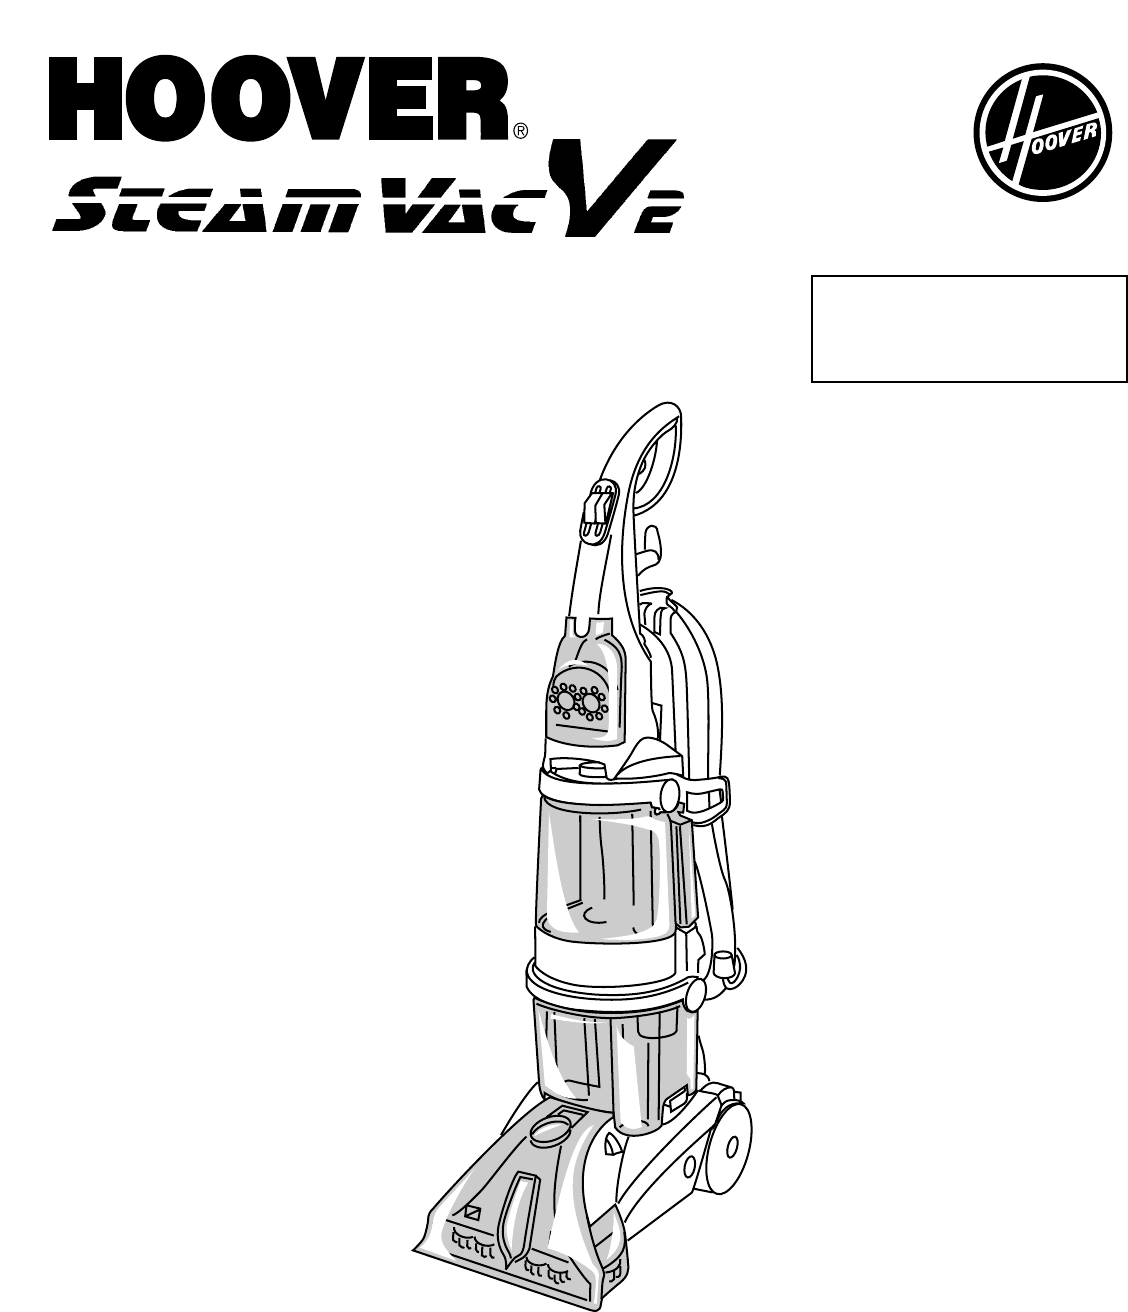 Hoover Vacuum Cleaner SteamVac V2 User Guide